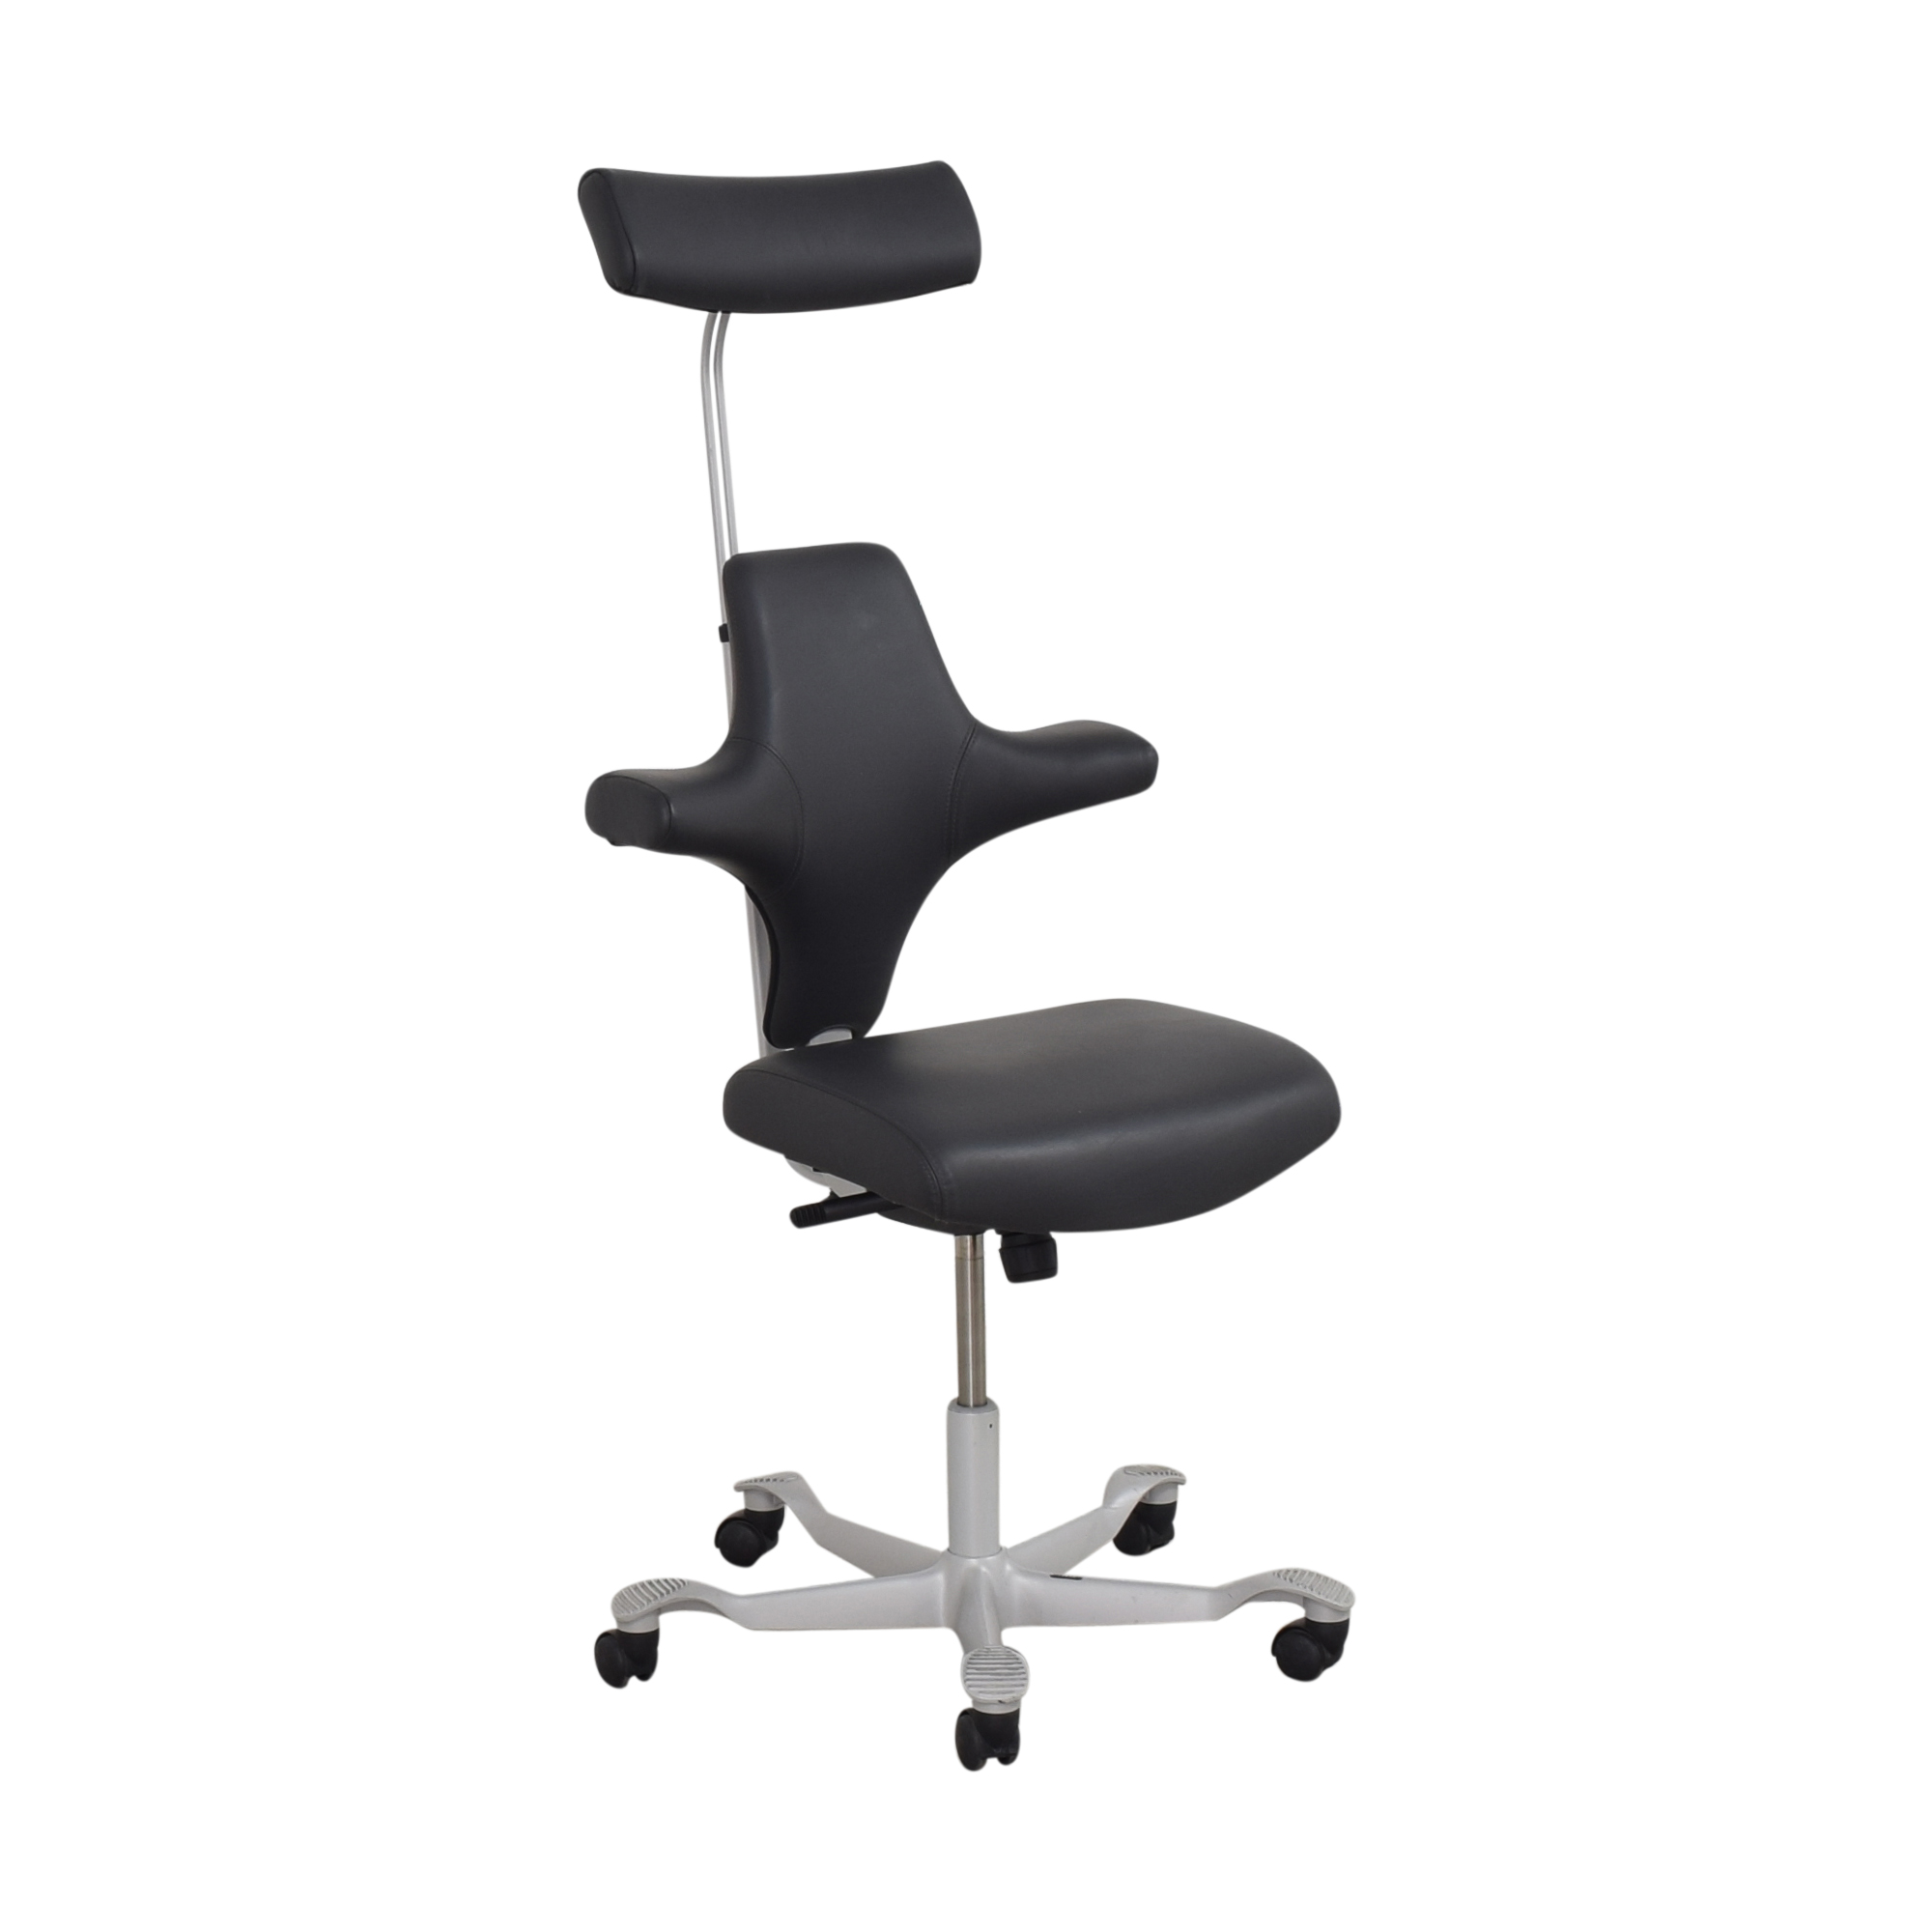 HAG HAG Capisco Adjustable Swivel Chair nyc